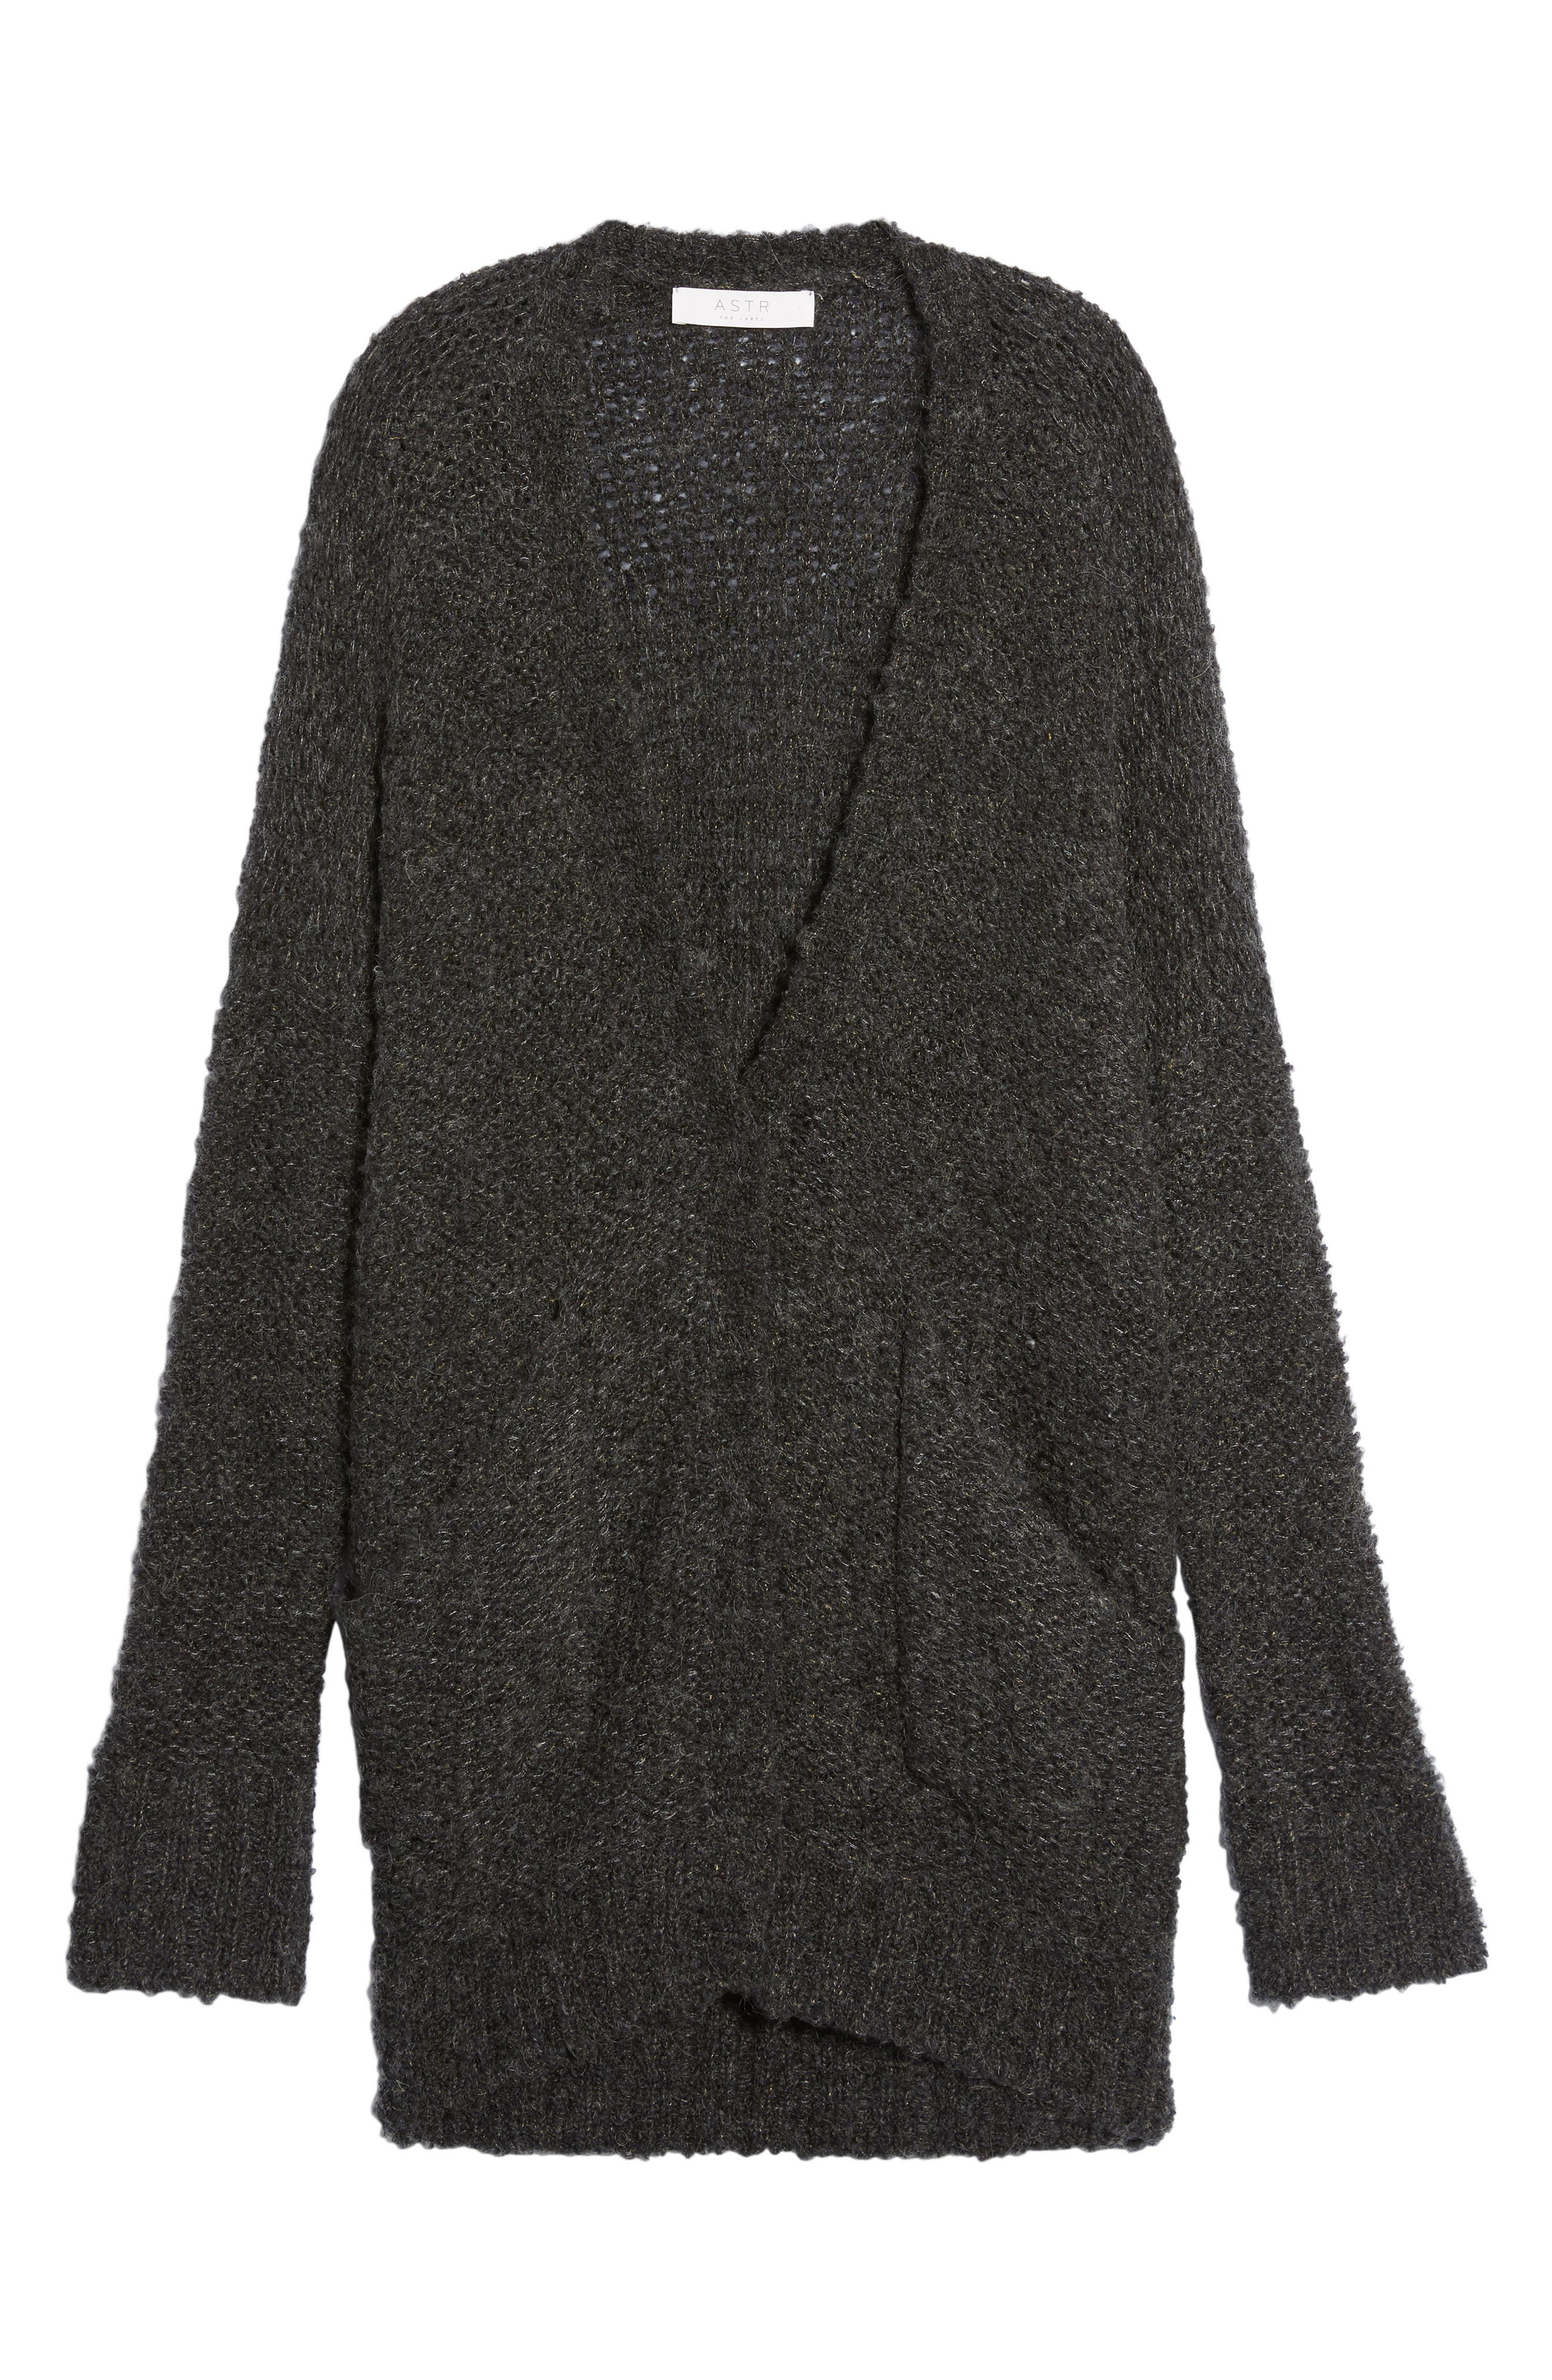 Fallon Cardigan,                             Alternate thumbnail 11, color,